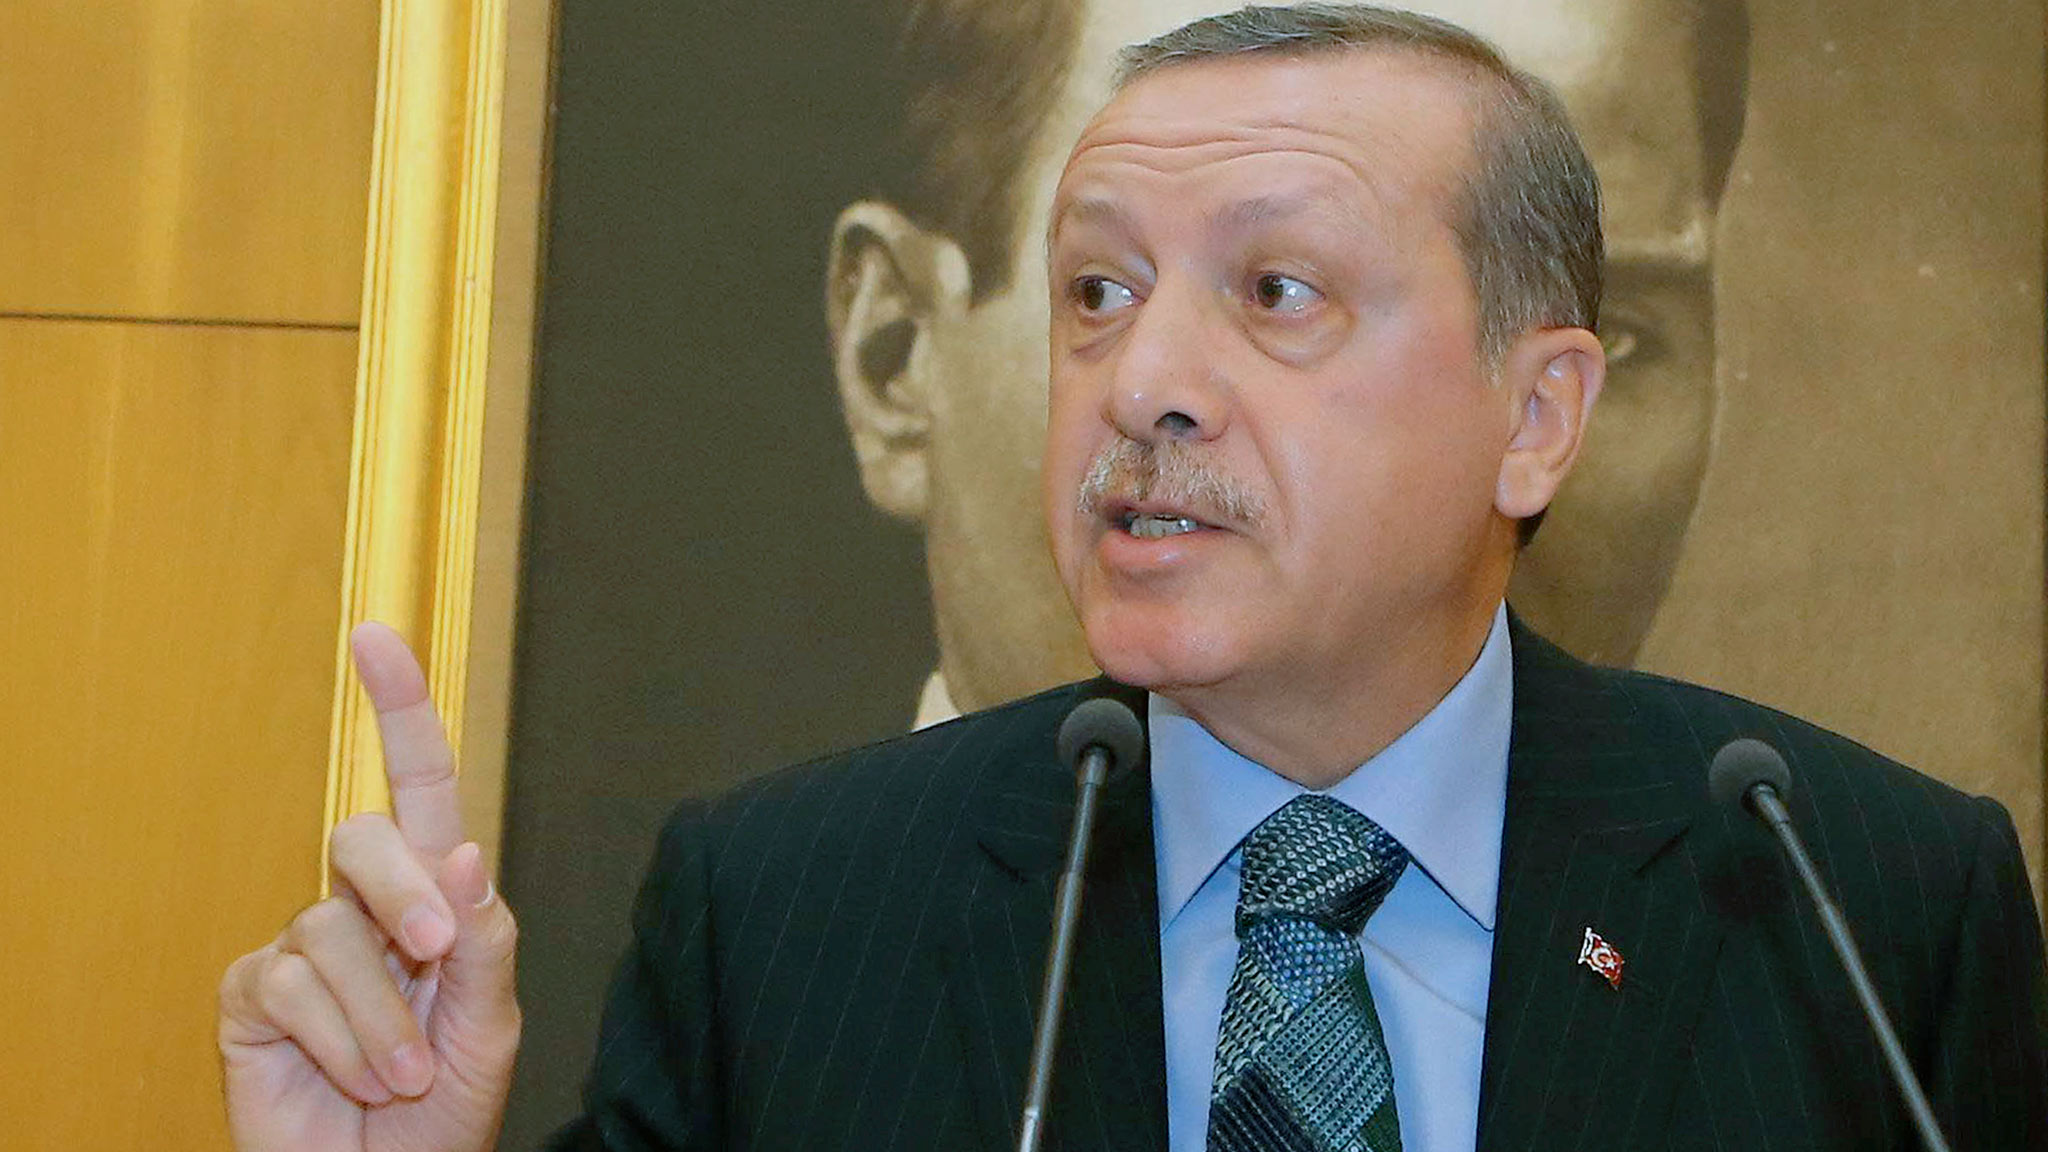 Turkey says Israel behind Egypt coup | Financial Times